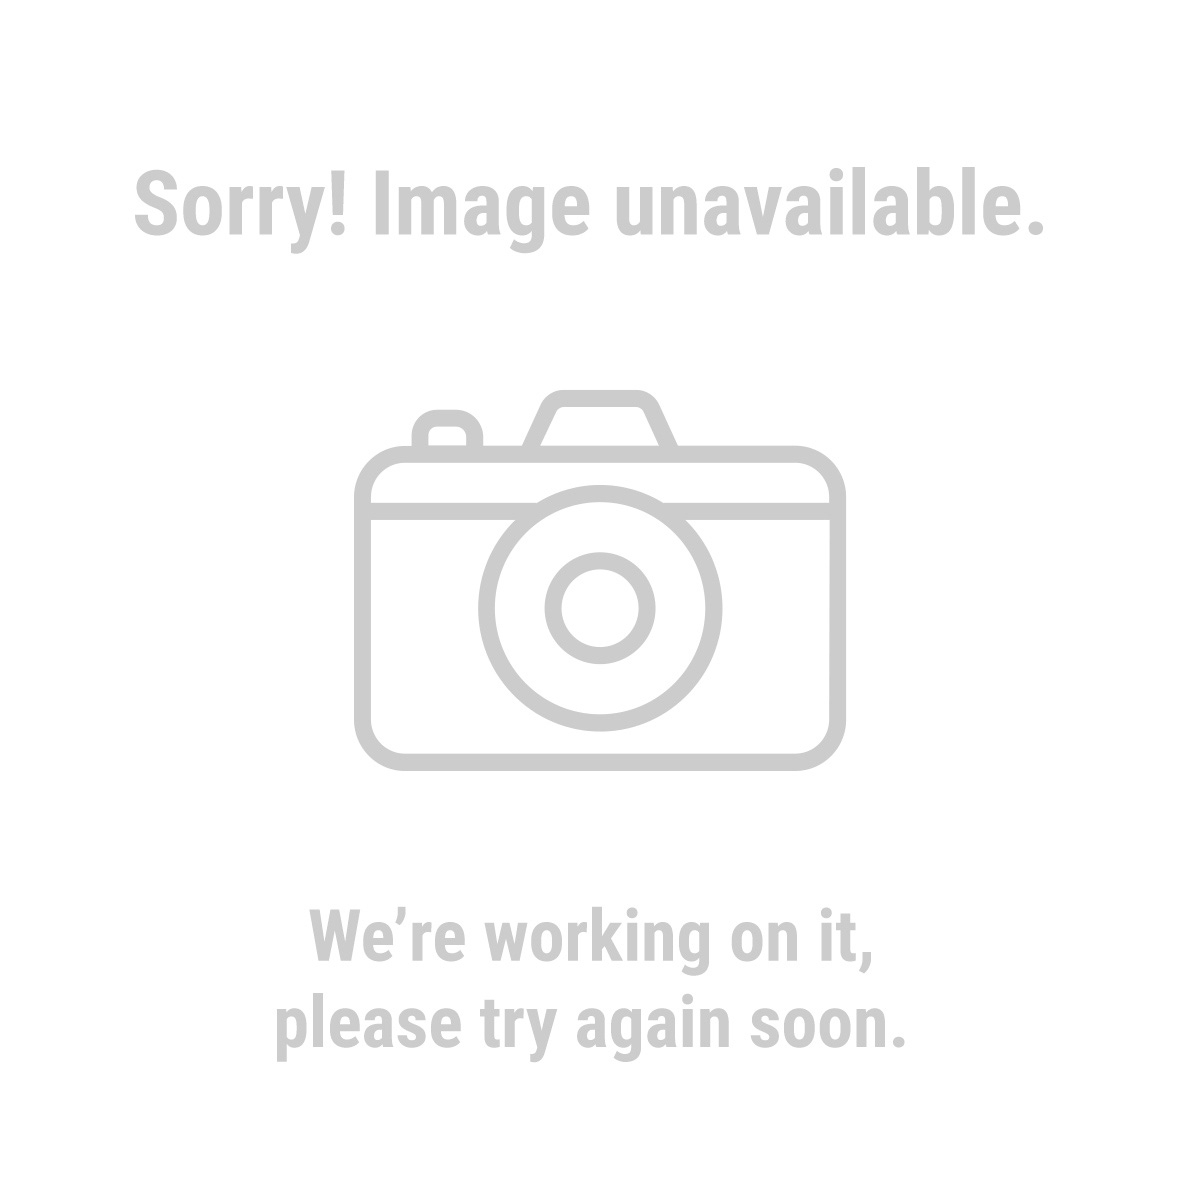 Storehouse 95496 Parts Rack with Removable Bins